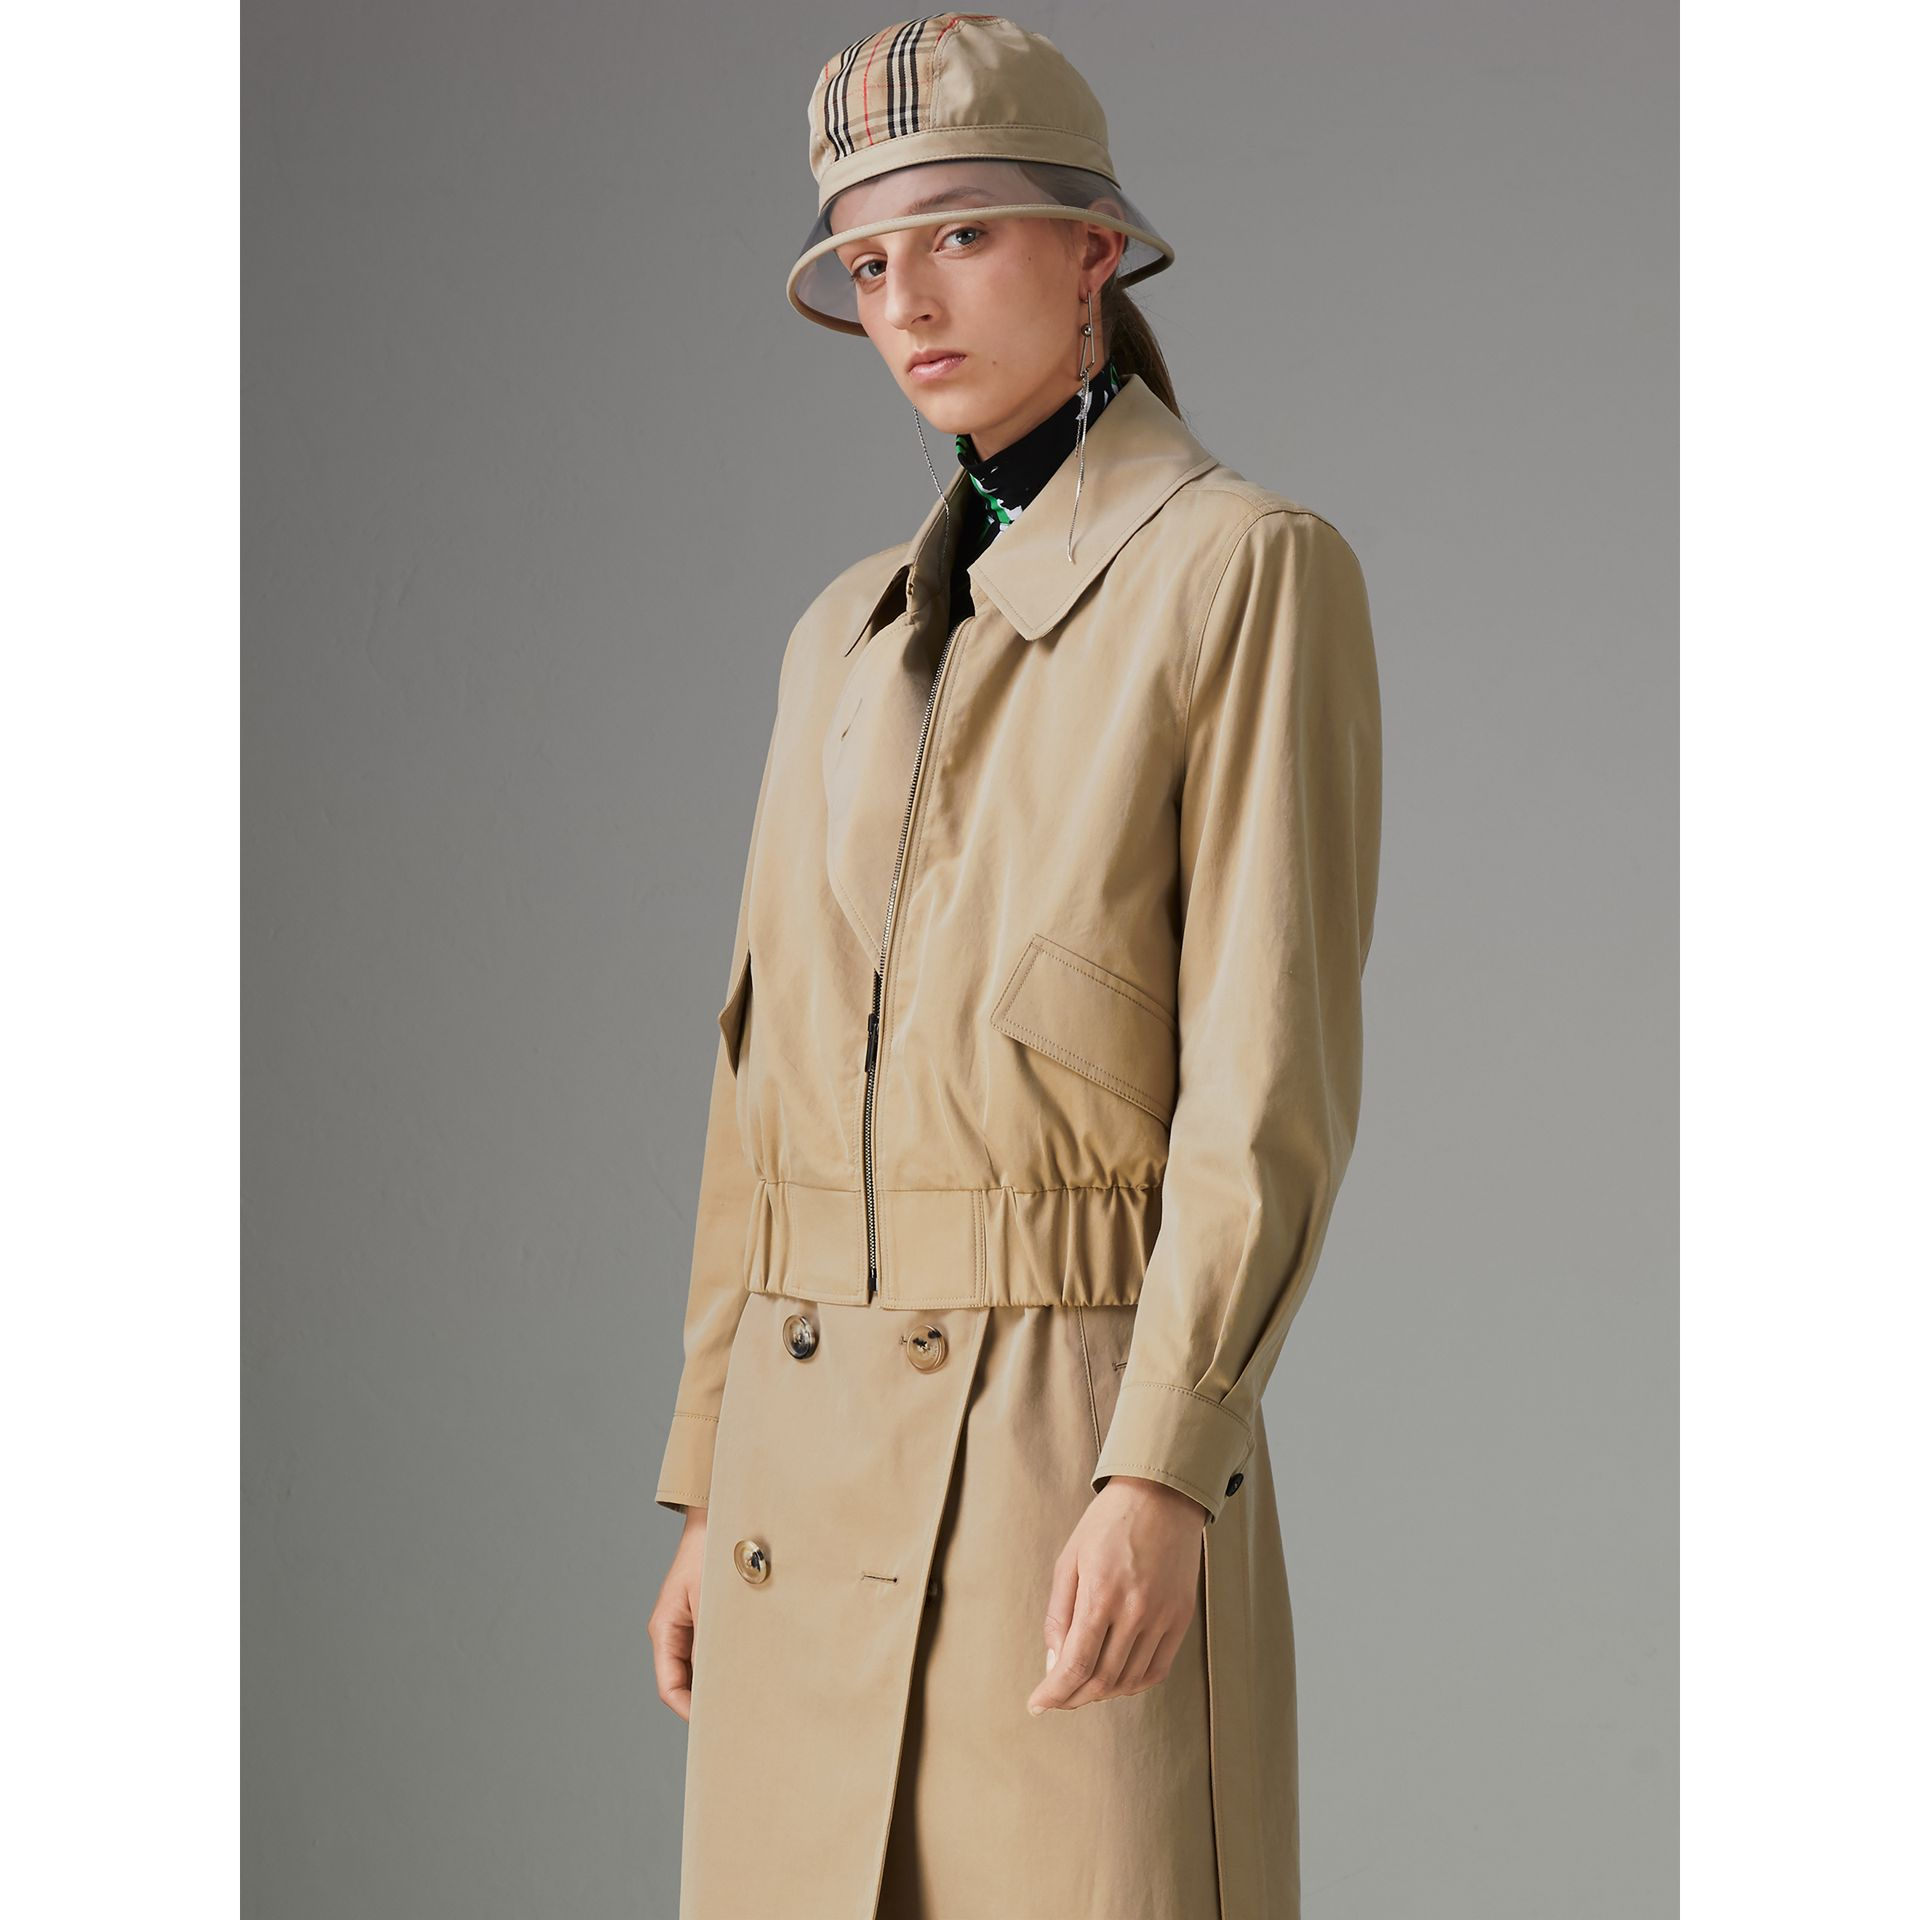 Trench Harrington reconstitué en gabardine tropicale (Miel) - Femme | Burberry - photo de la galerie 1